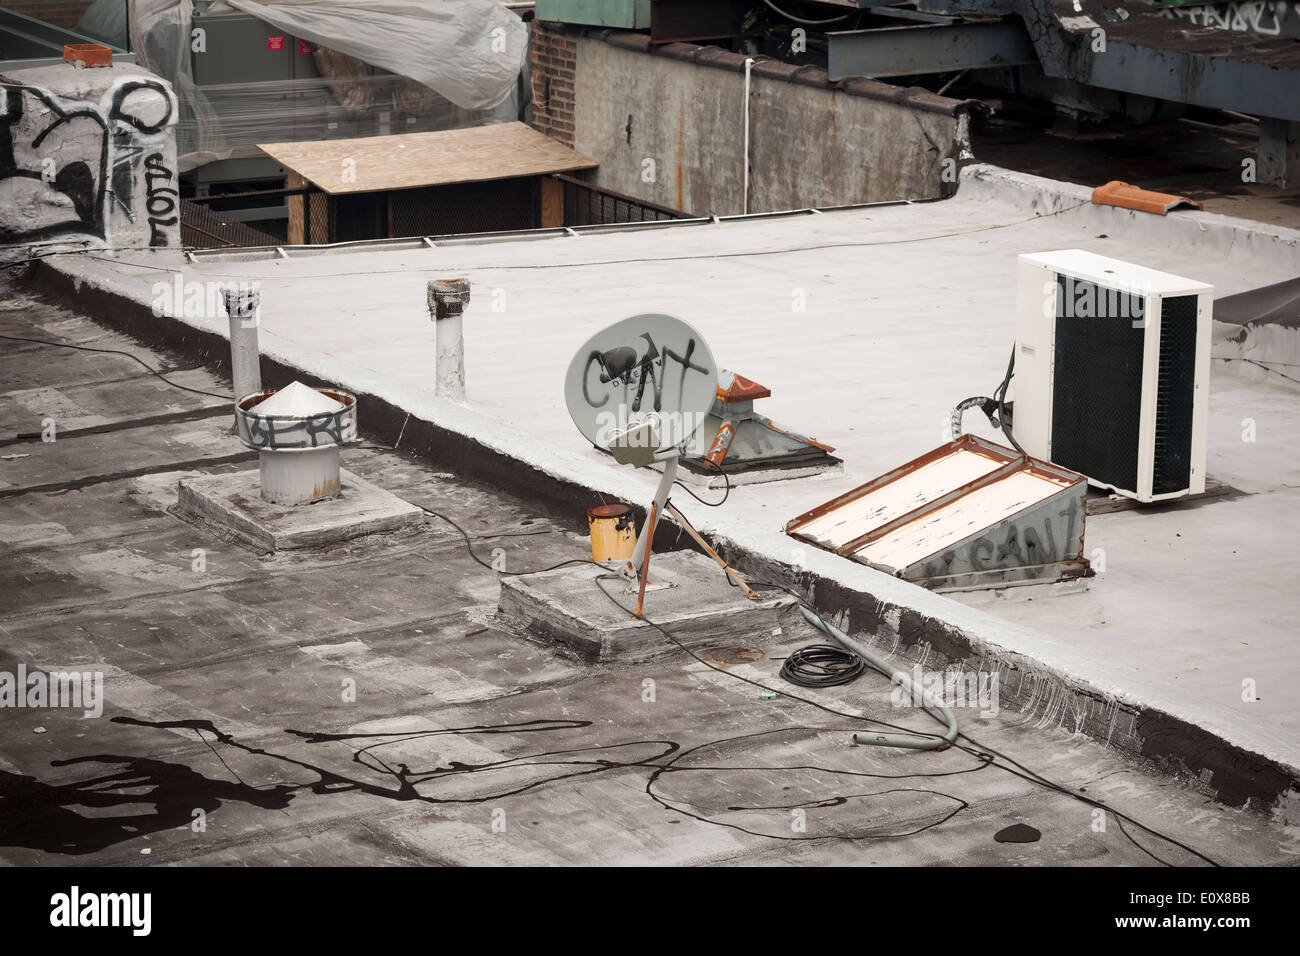 DirecTV satellite dish on the roof of a building in the New York – Satellite Dish Technician